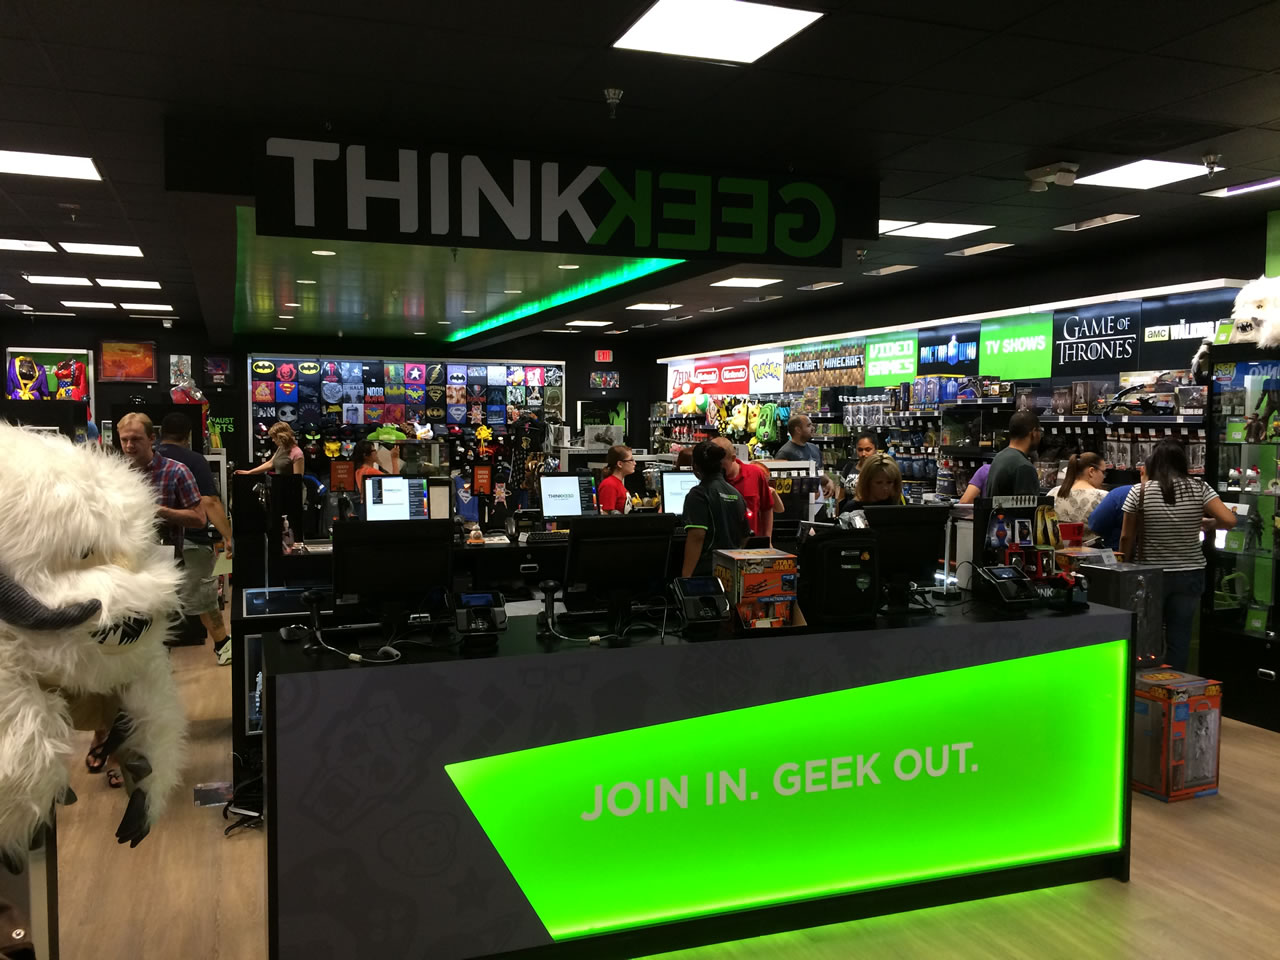 10 thinkgeek store - from front